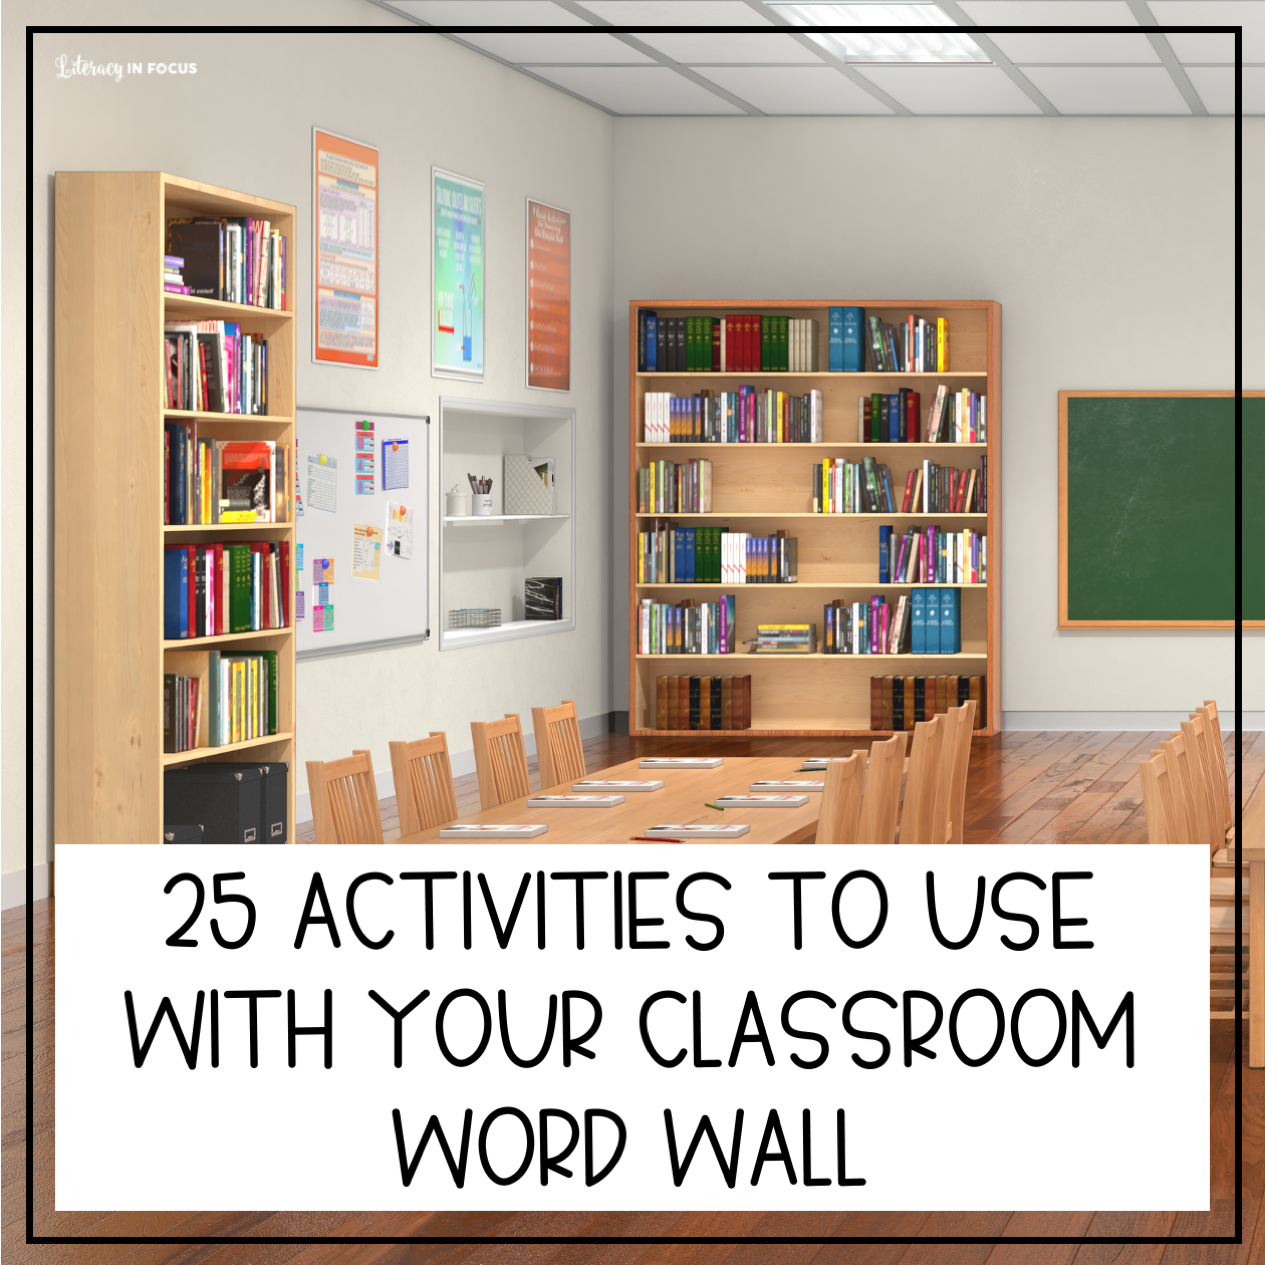 Word Wall Activities and Ideas